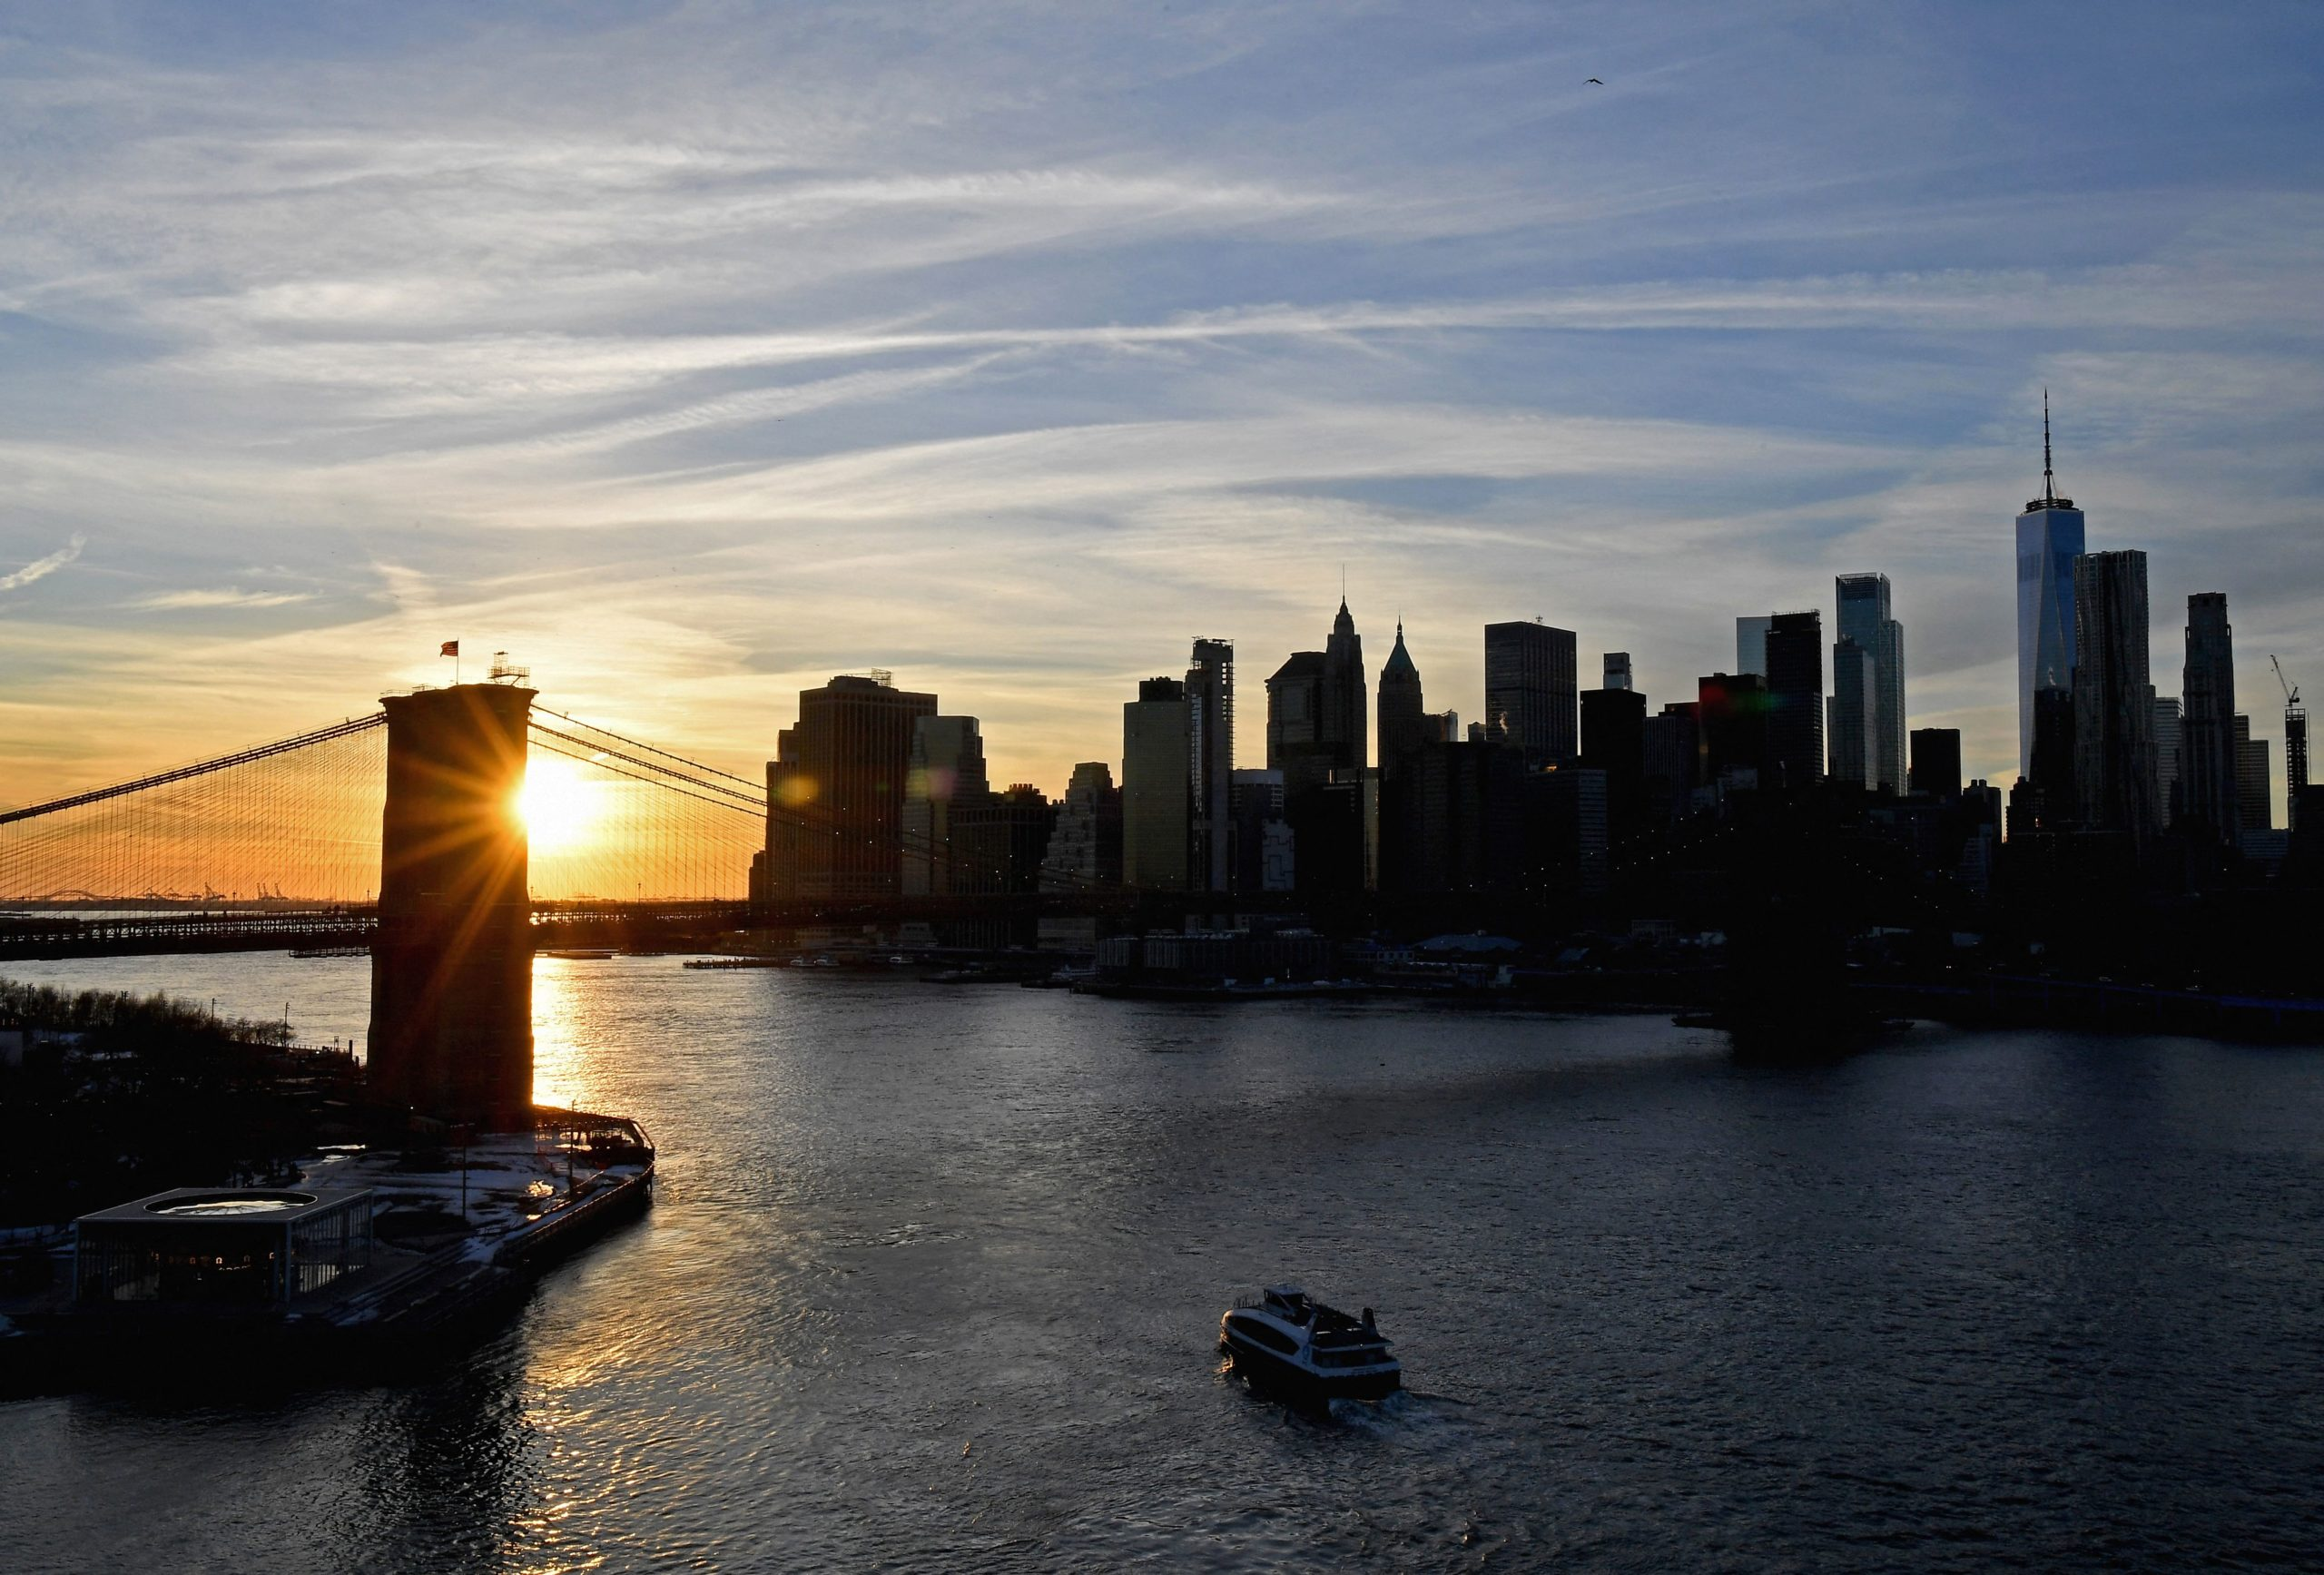 The sun sets behind Brooklyn bridge and skyline of lower Manhattan on February 17, 2021 in New York City. (Anglea Weiss/AFP via Getty Images)